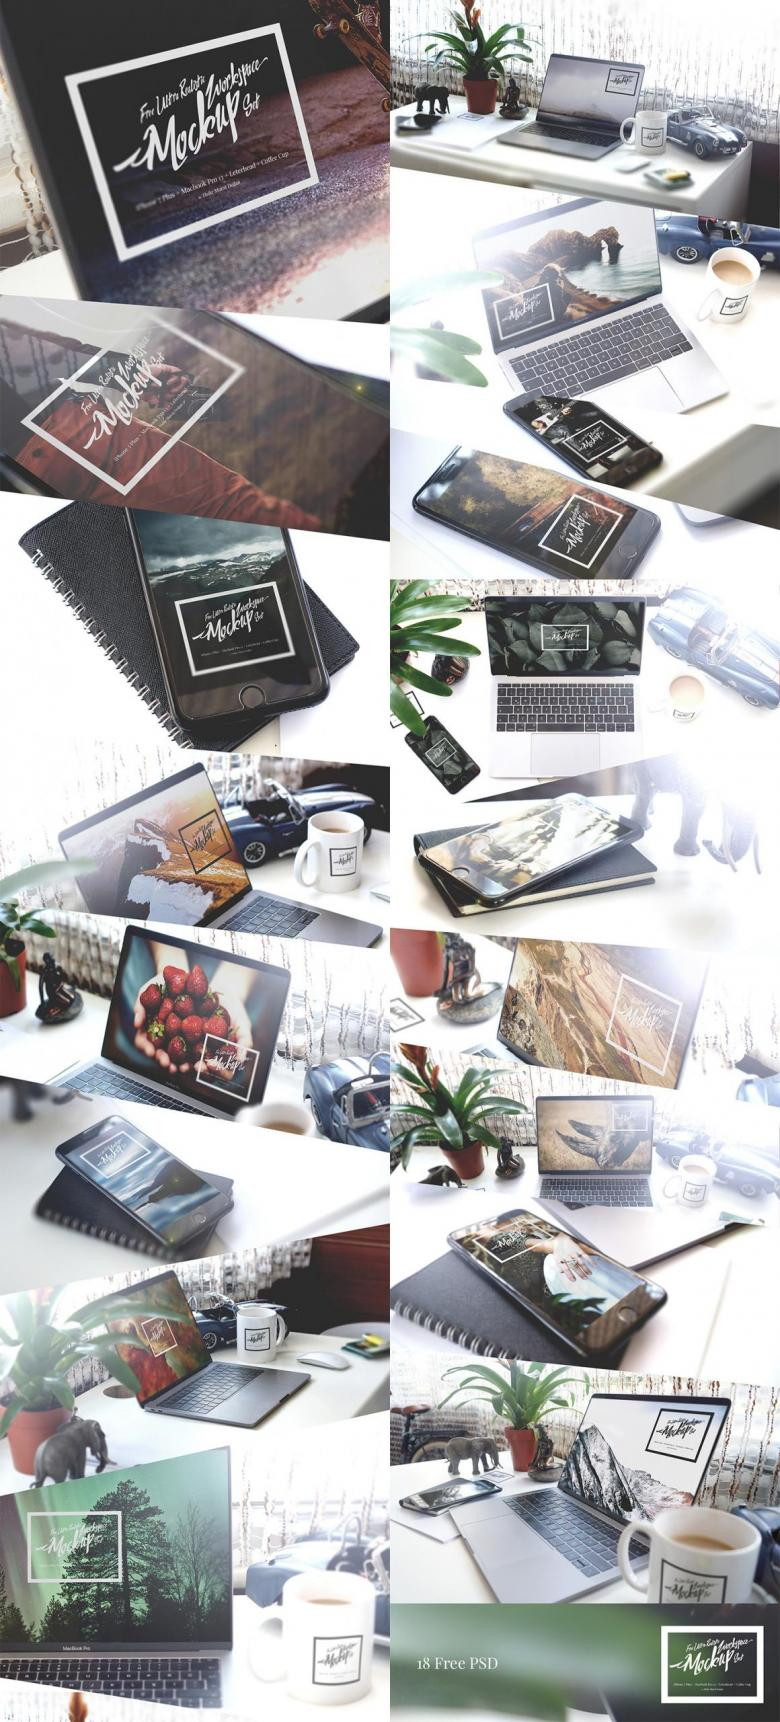 Photorealistic Workspace Mockup Set